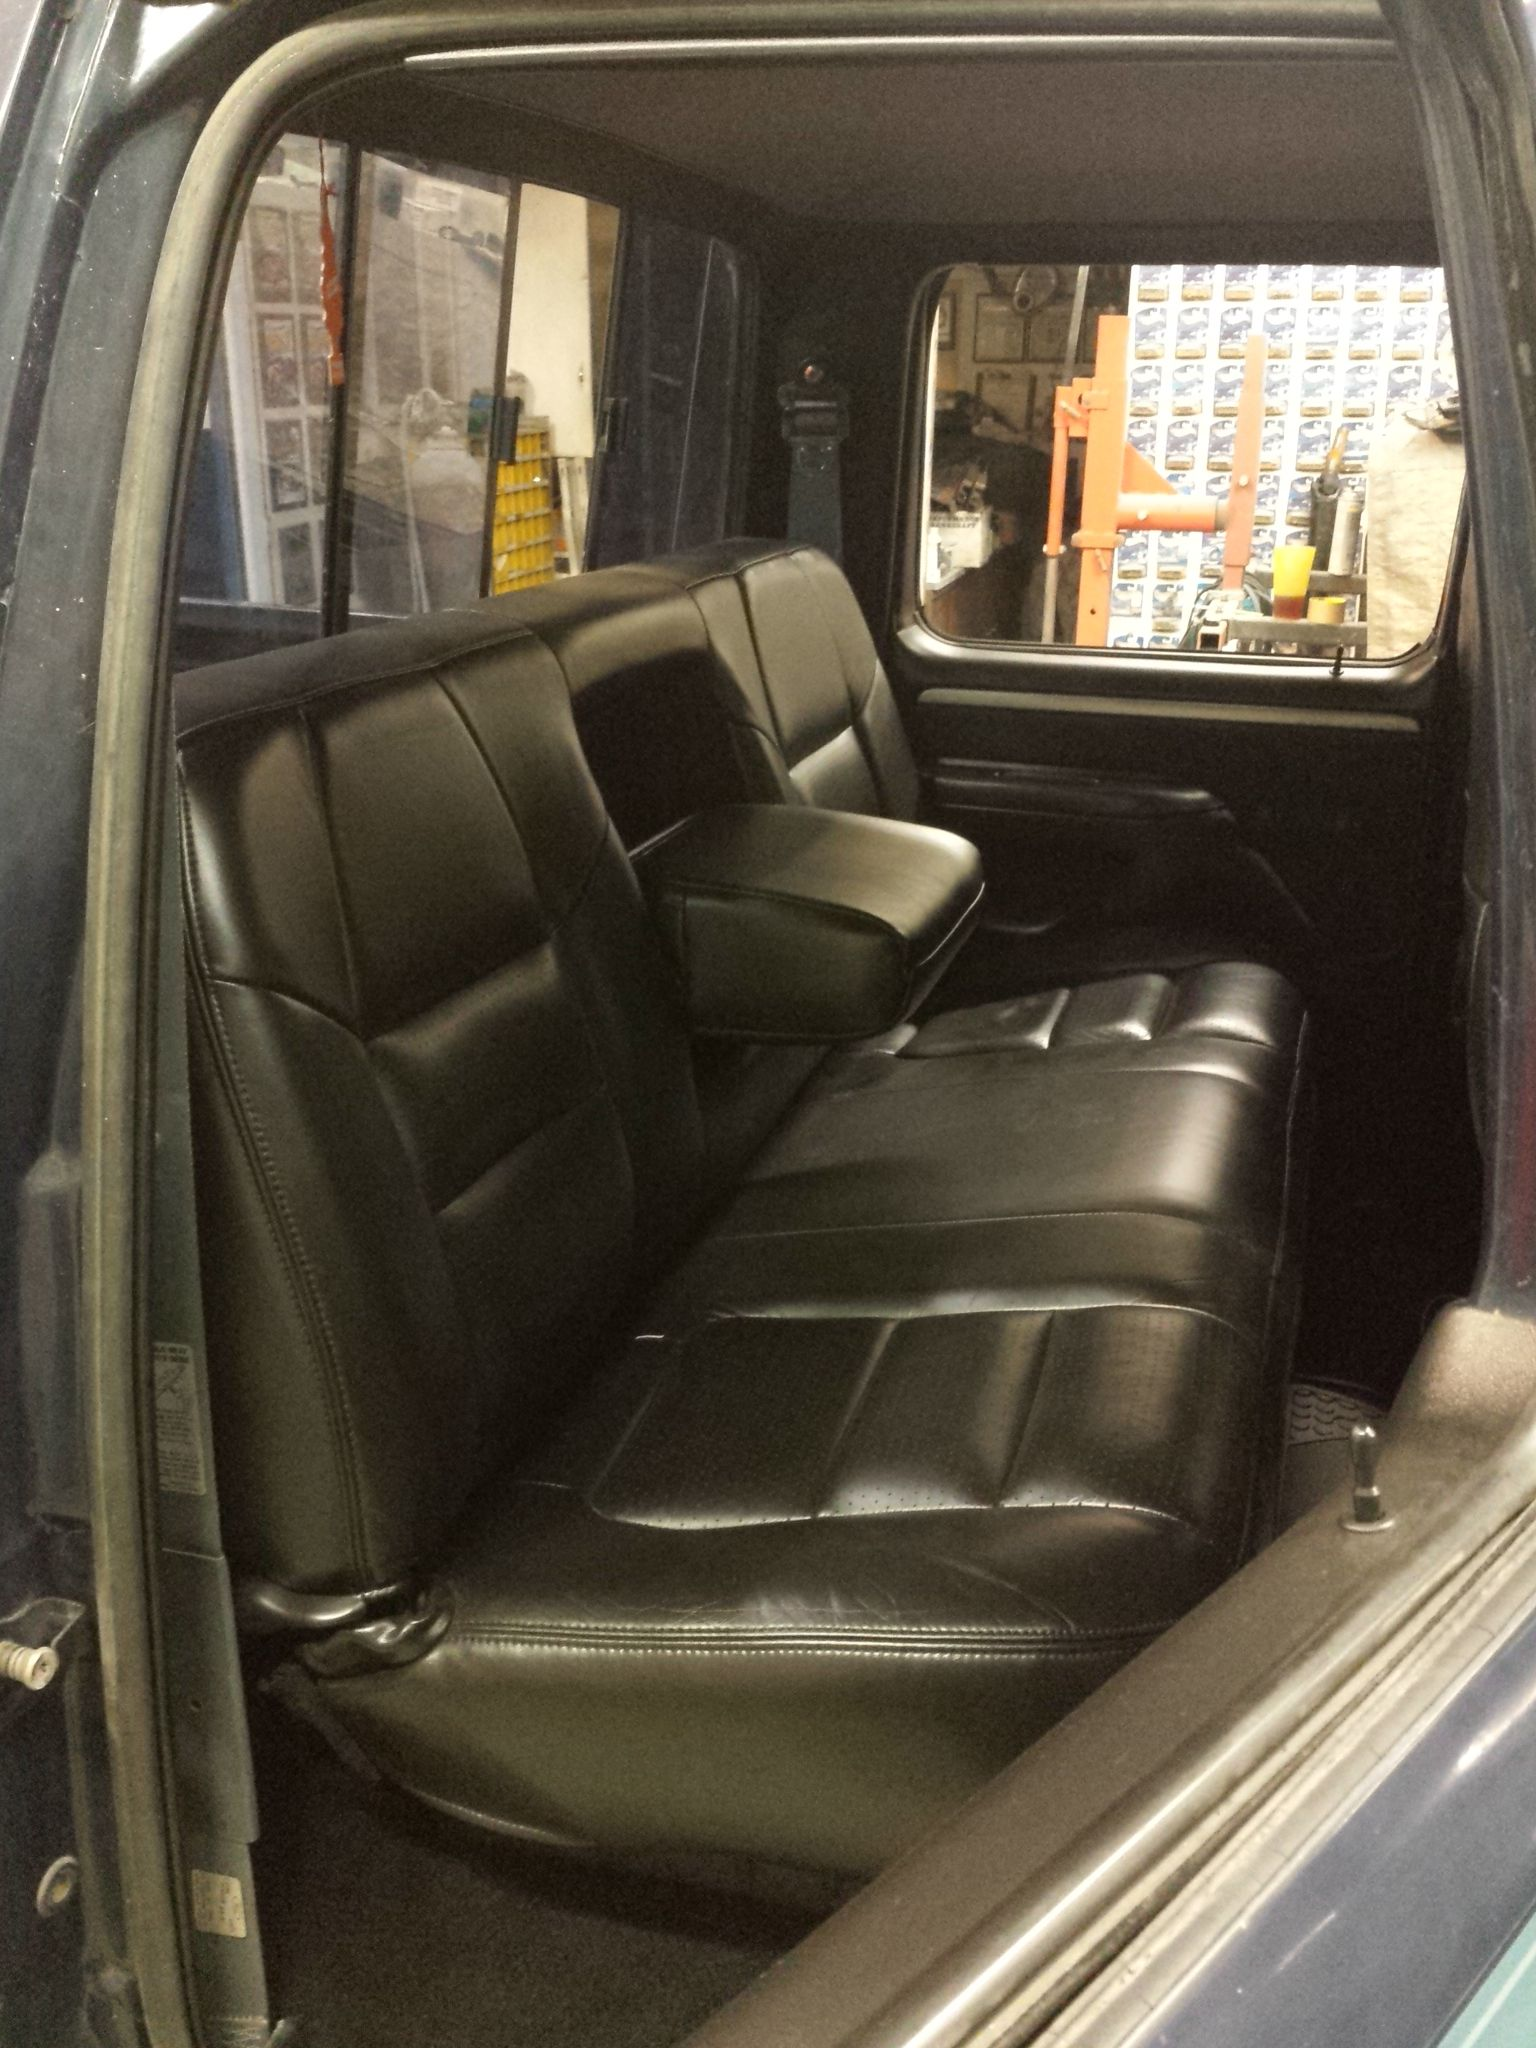 Inside My 1993 F350 Big Blue Full Black Interior Ford Lariat Leather Power Heated Seats Black Carpet Black Panels Ford Interior Ford Obs Truck Interior